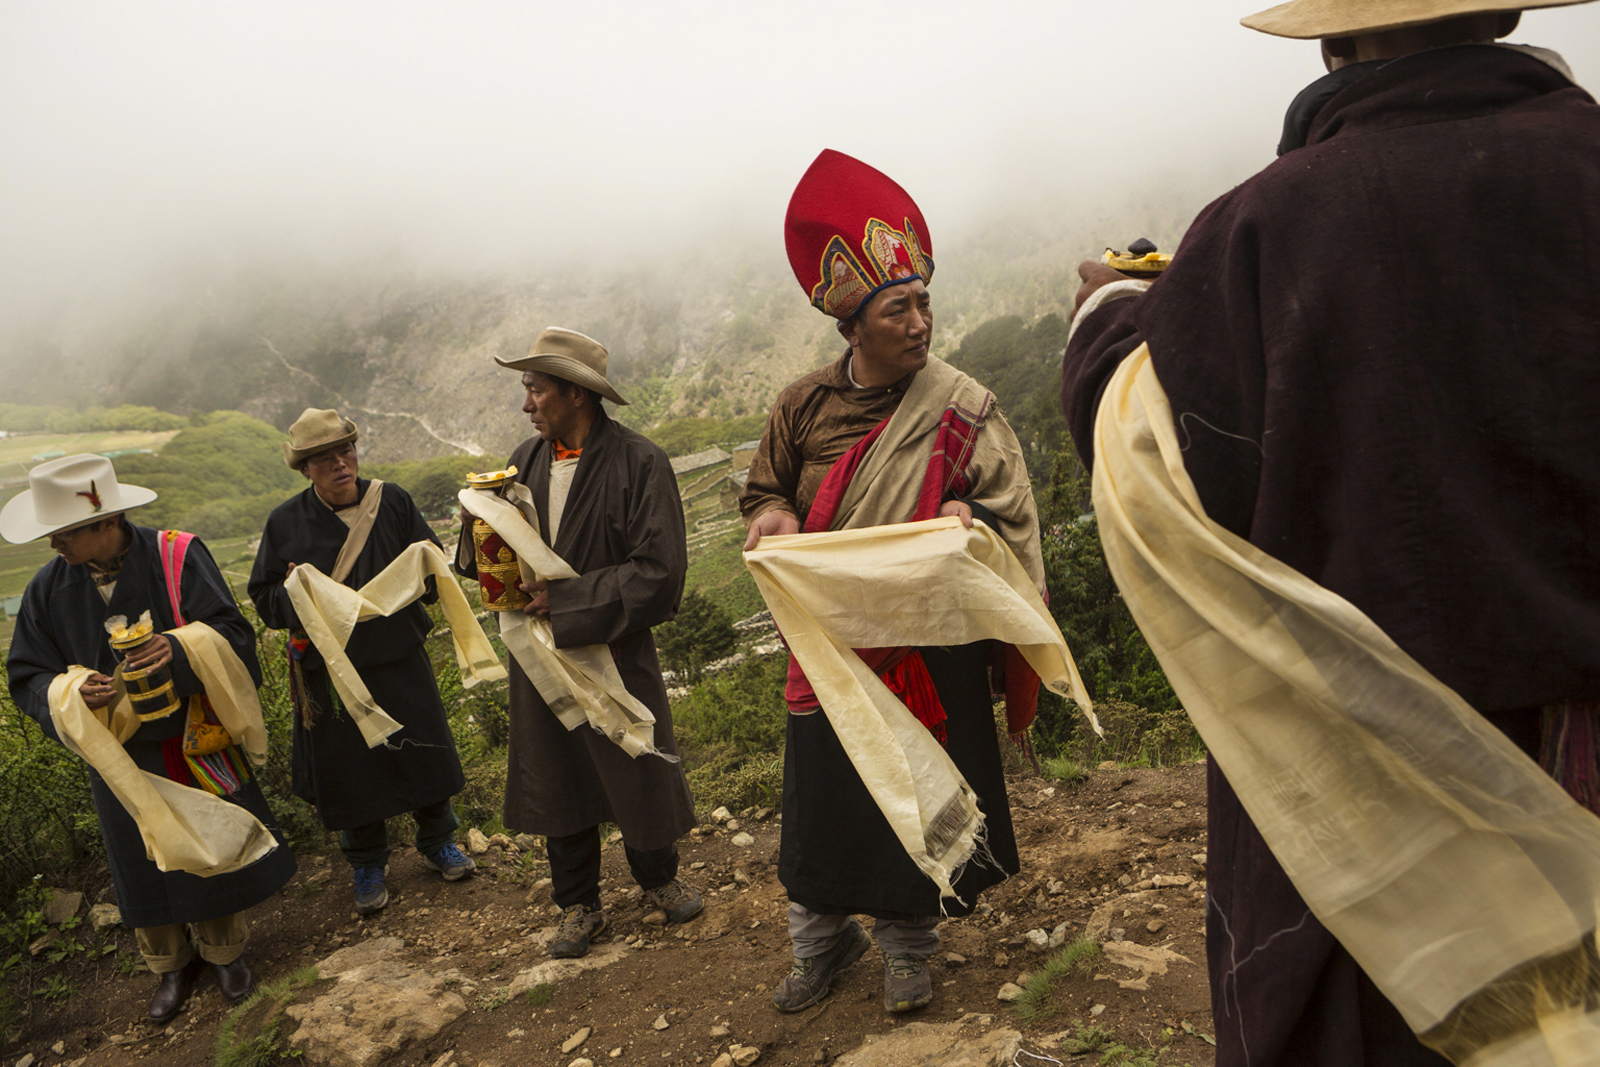 Welcoming of a senior Lama from Tanboche Monastary who will lead the ceremony of Dumji in Phortse village.  Most male participans also work for commercial outfitters on mountains like Everest, Amadablam, etc.